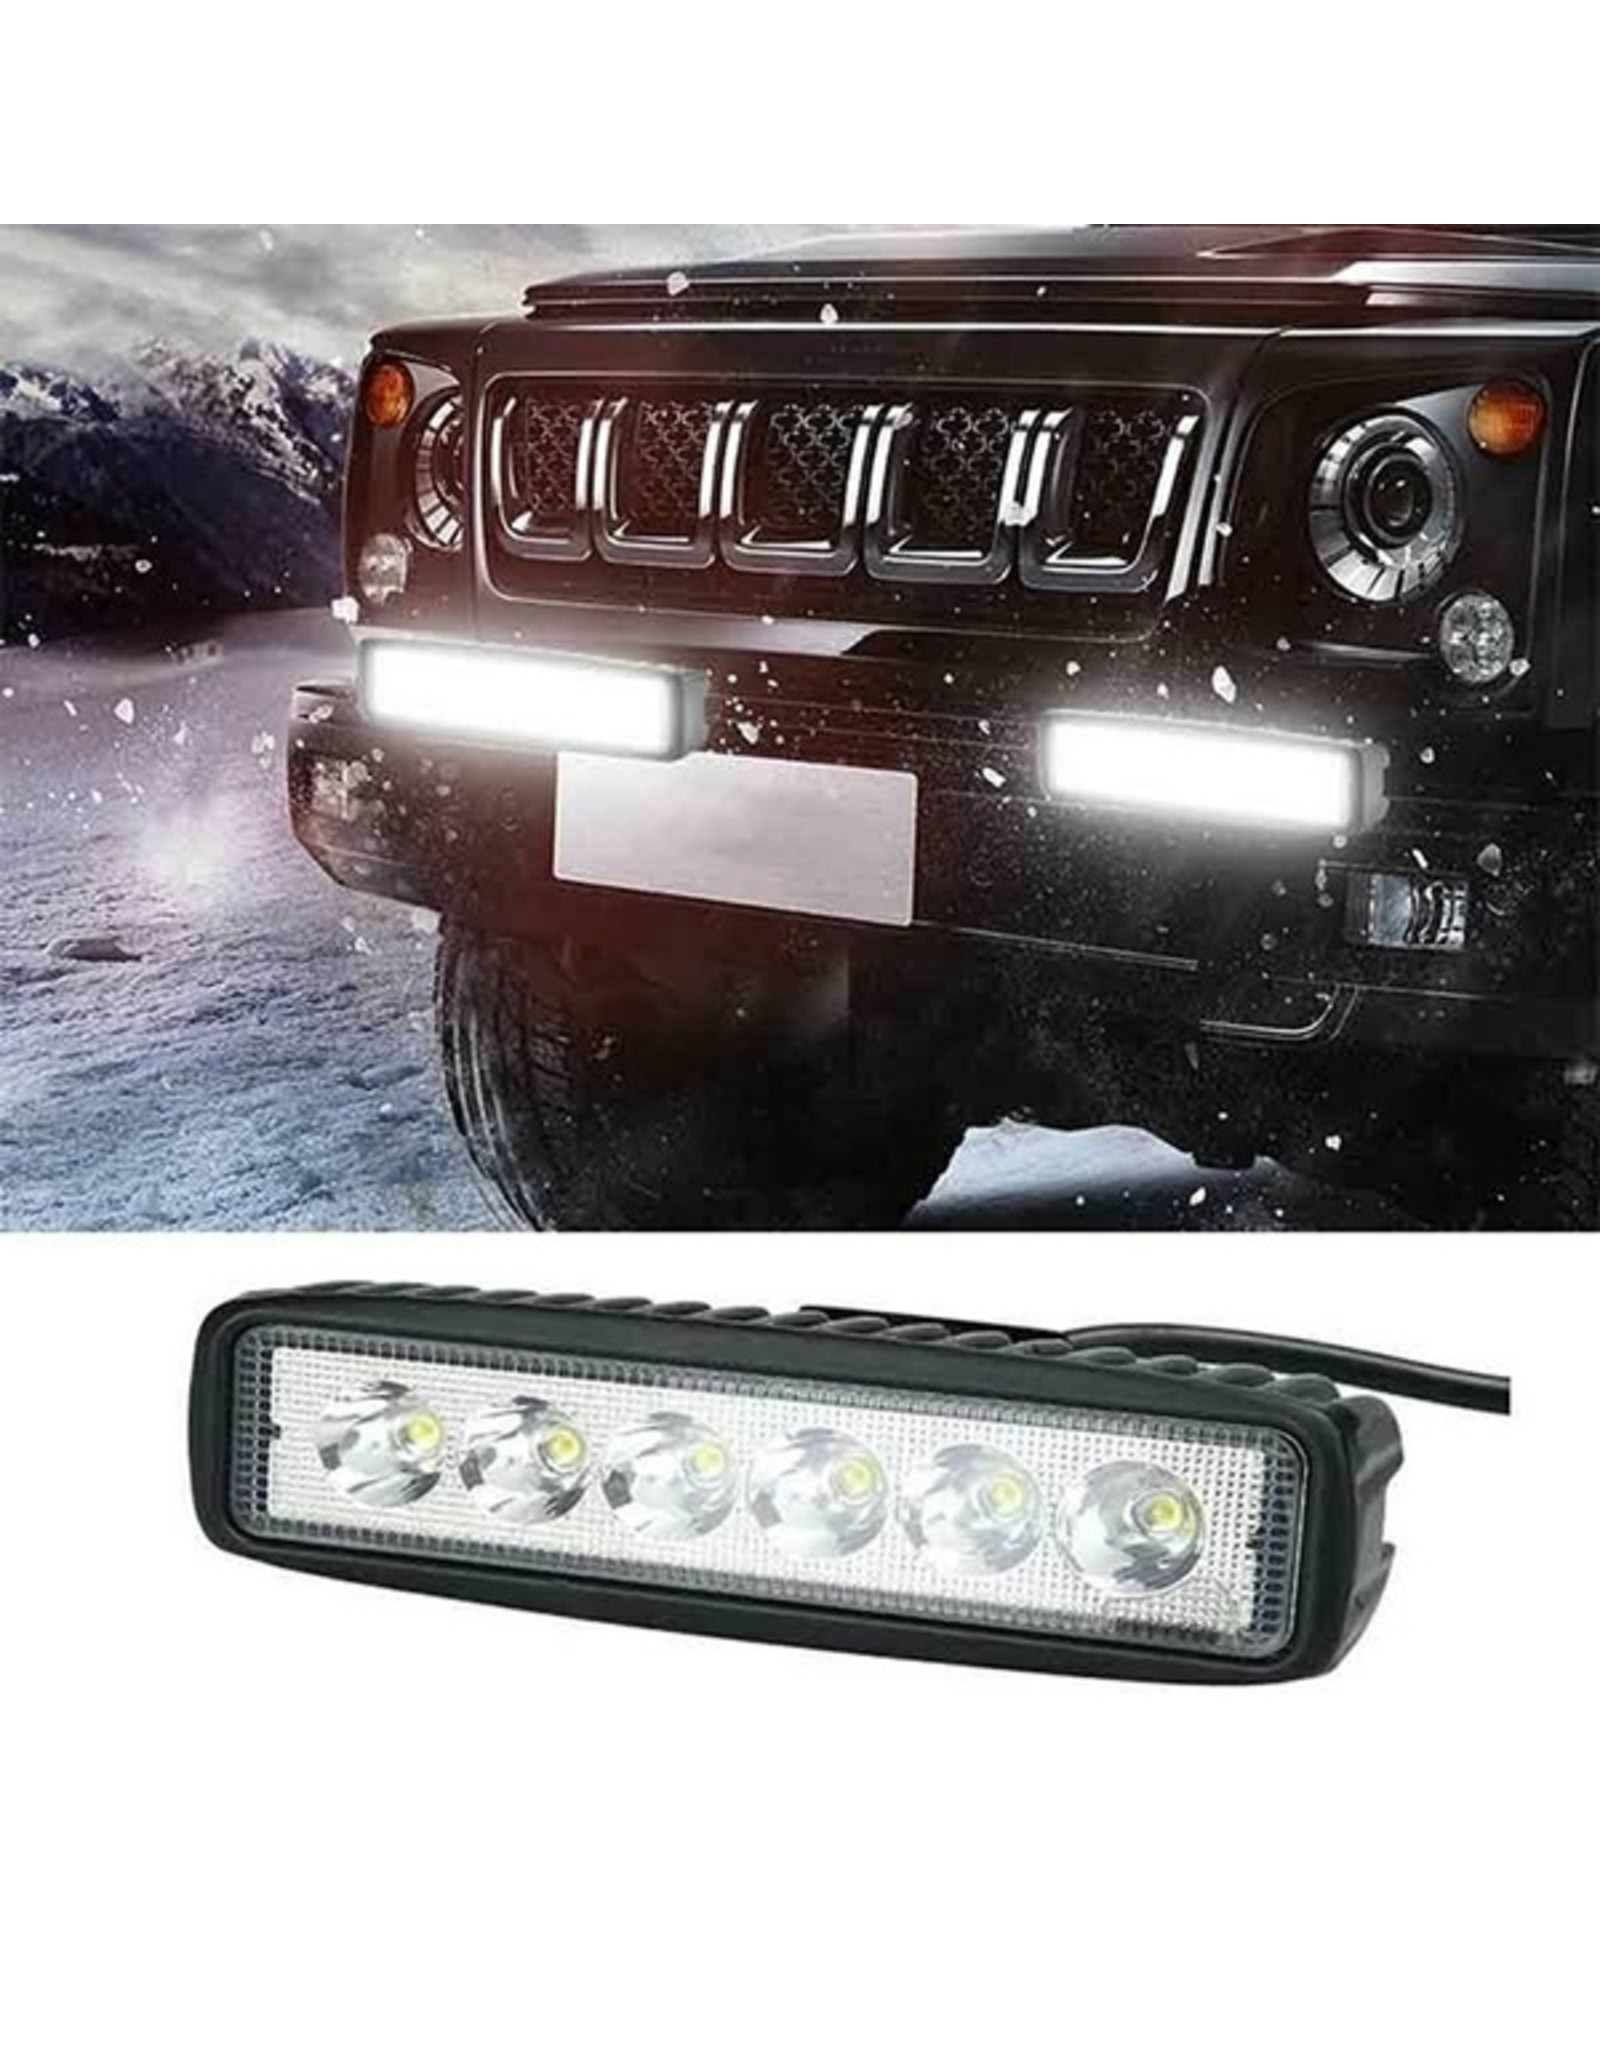 LED SPOT - 6 x 3 watt - front light - WIT - OFF-ROAD